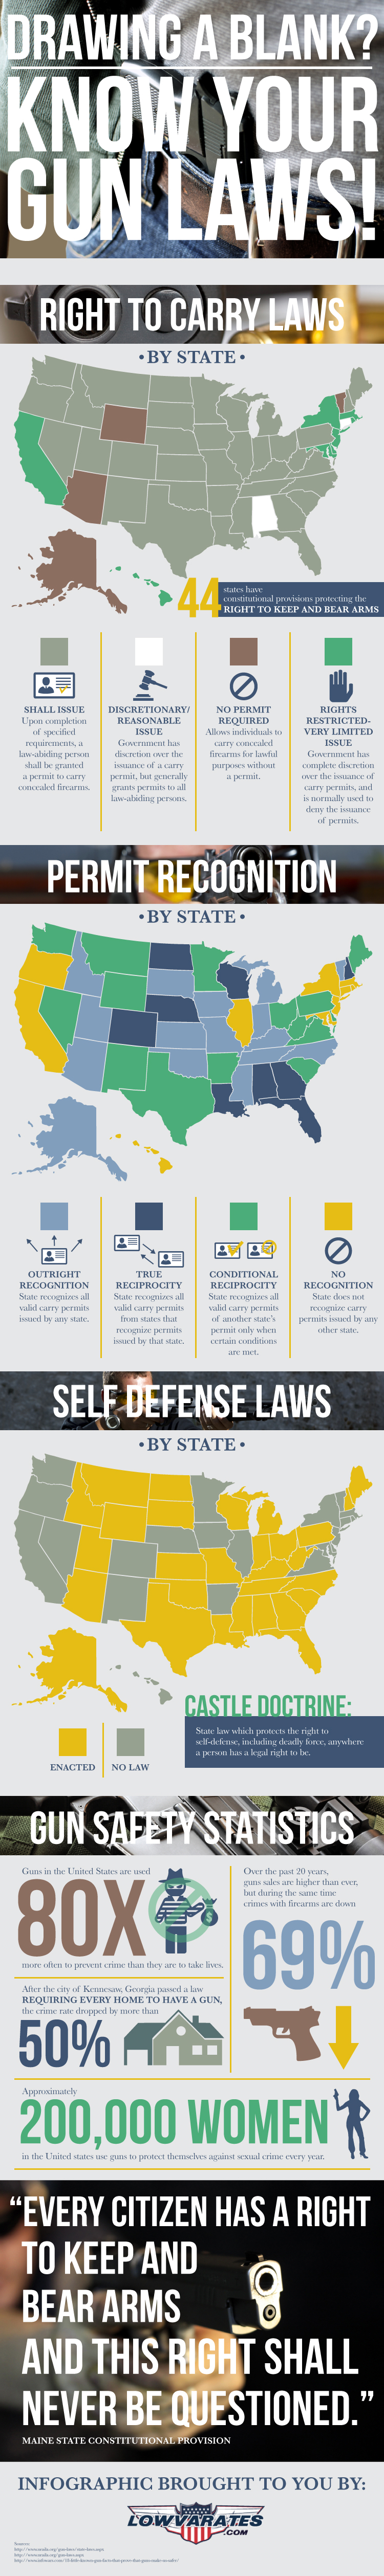 Drawing a Blank? Know Your Gun Laws!